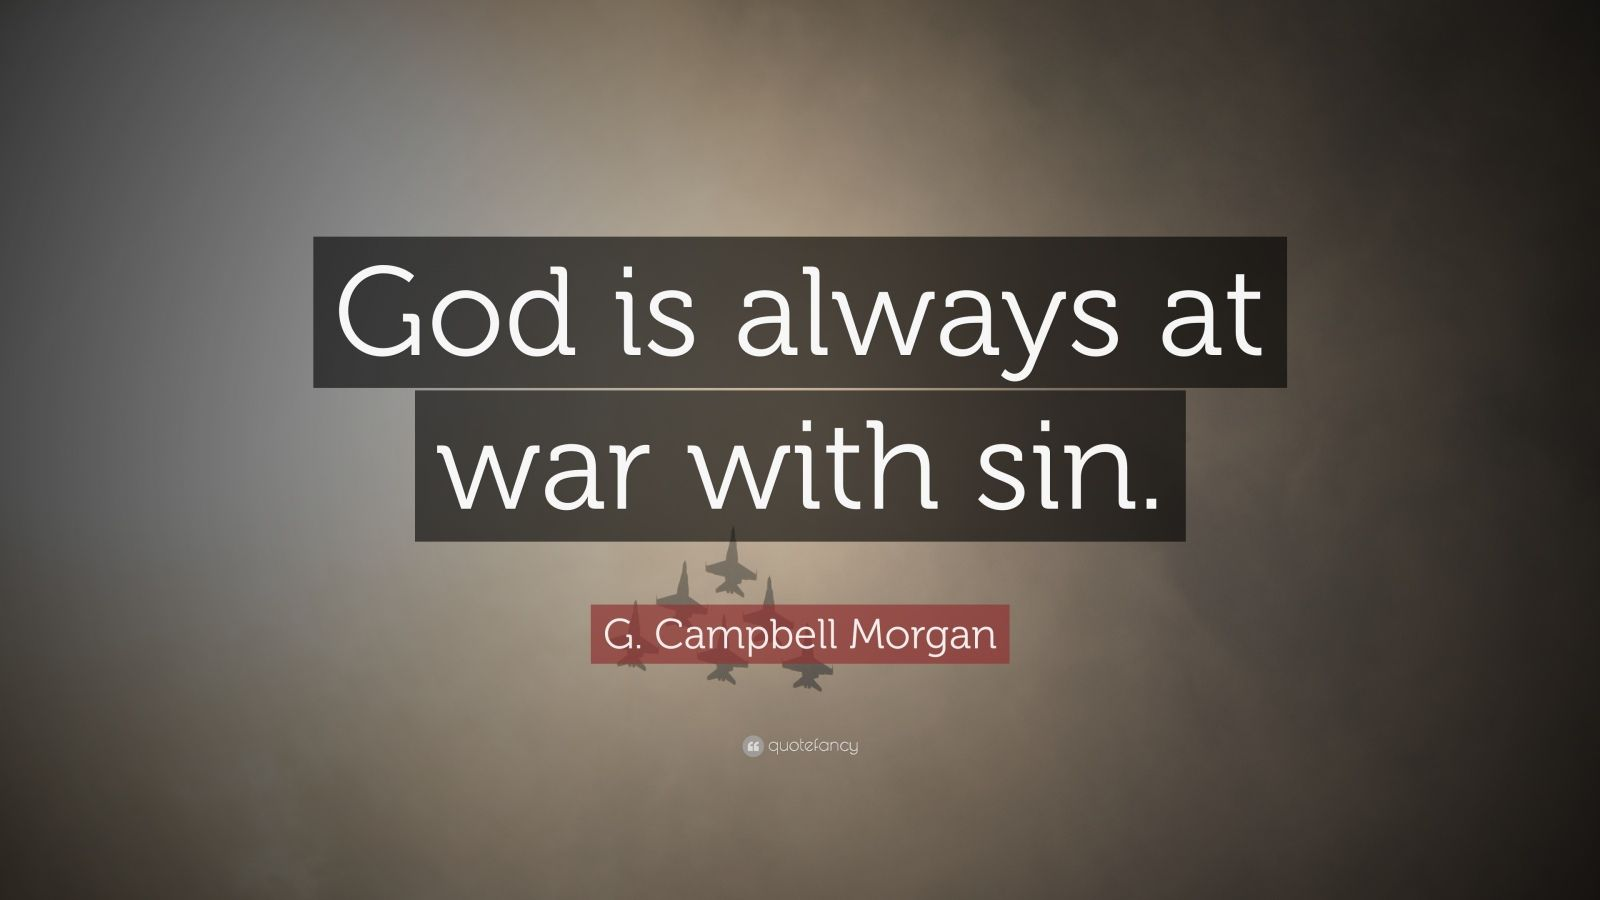 G campbell morgan quote god is always at war with sin